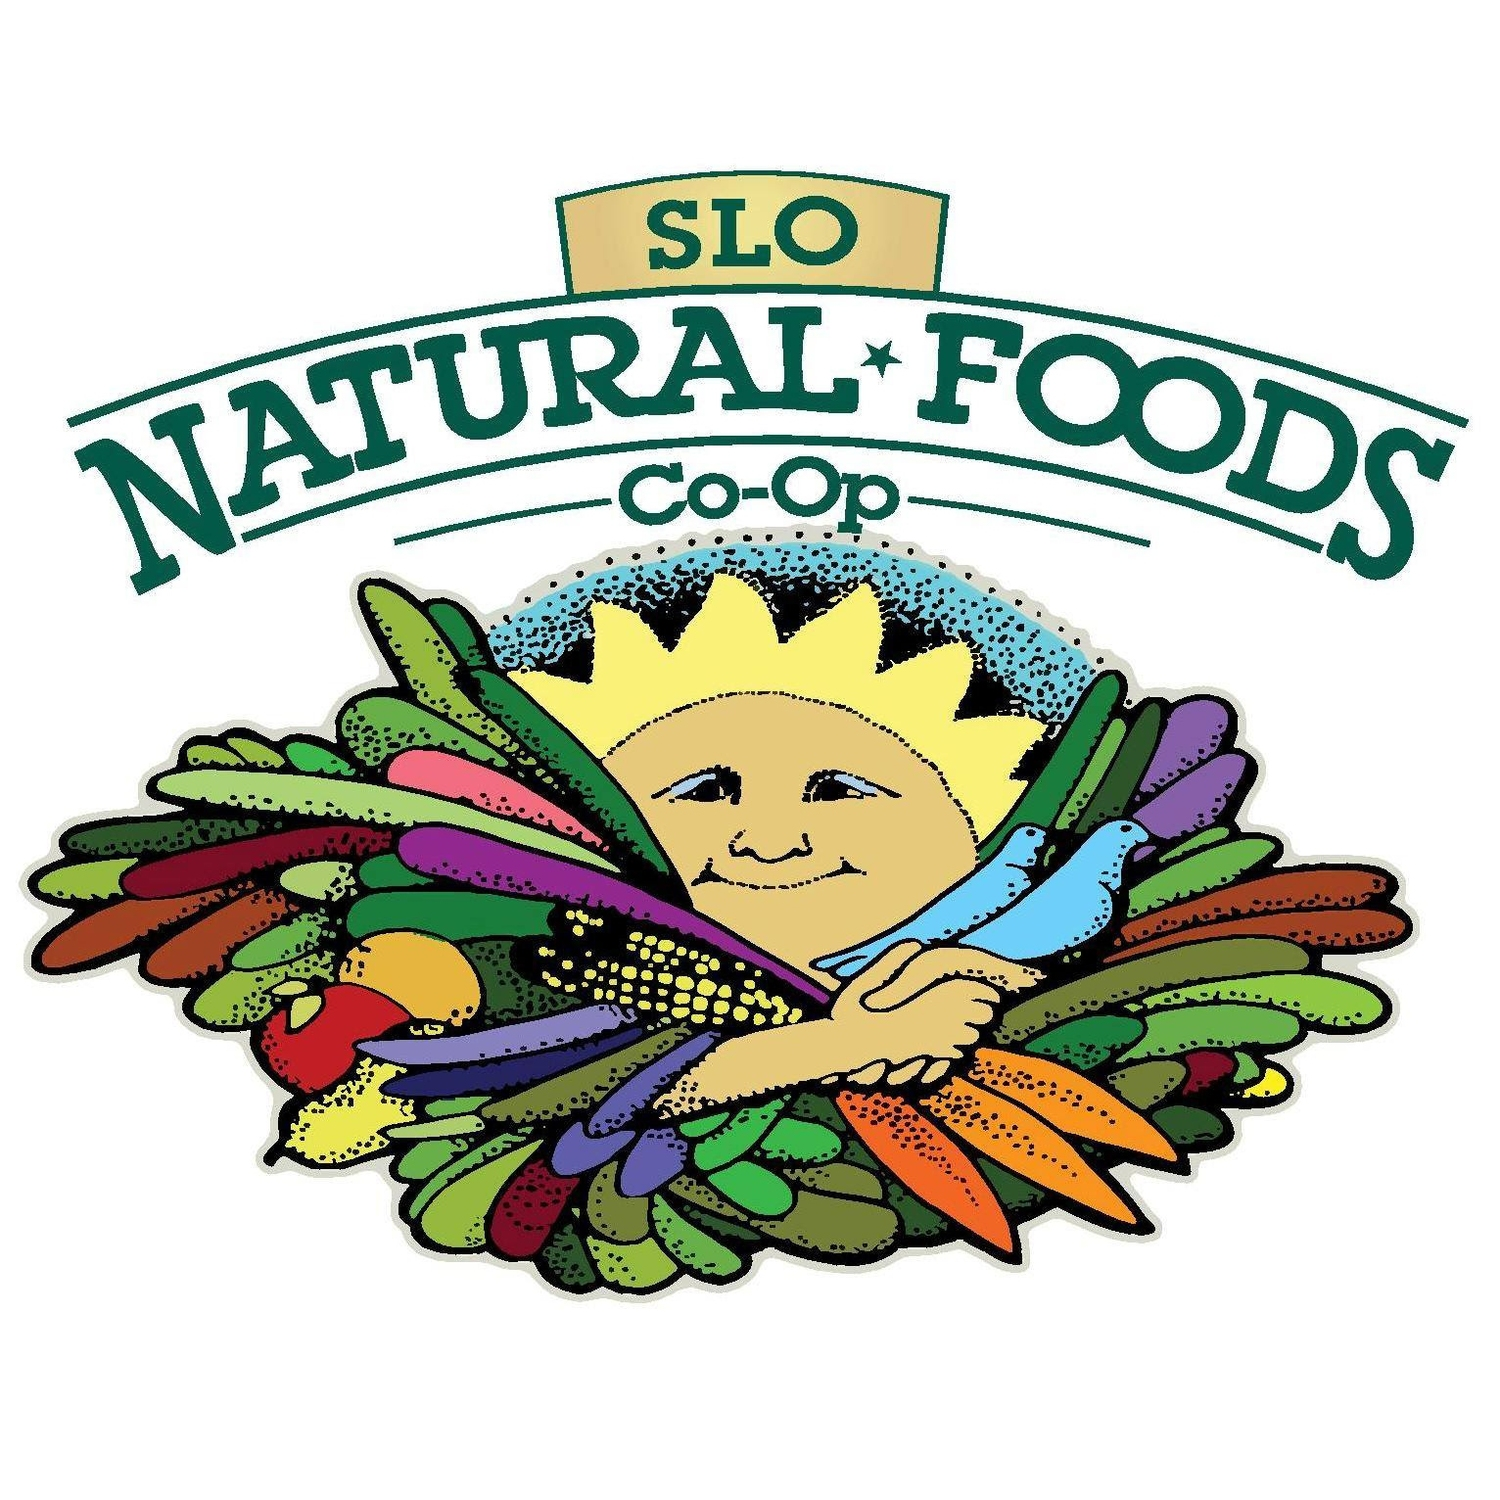 SLO Natural Foods Co-op